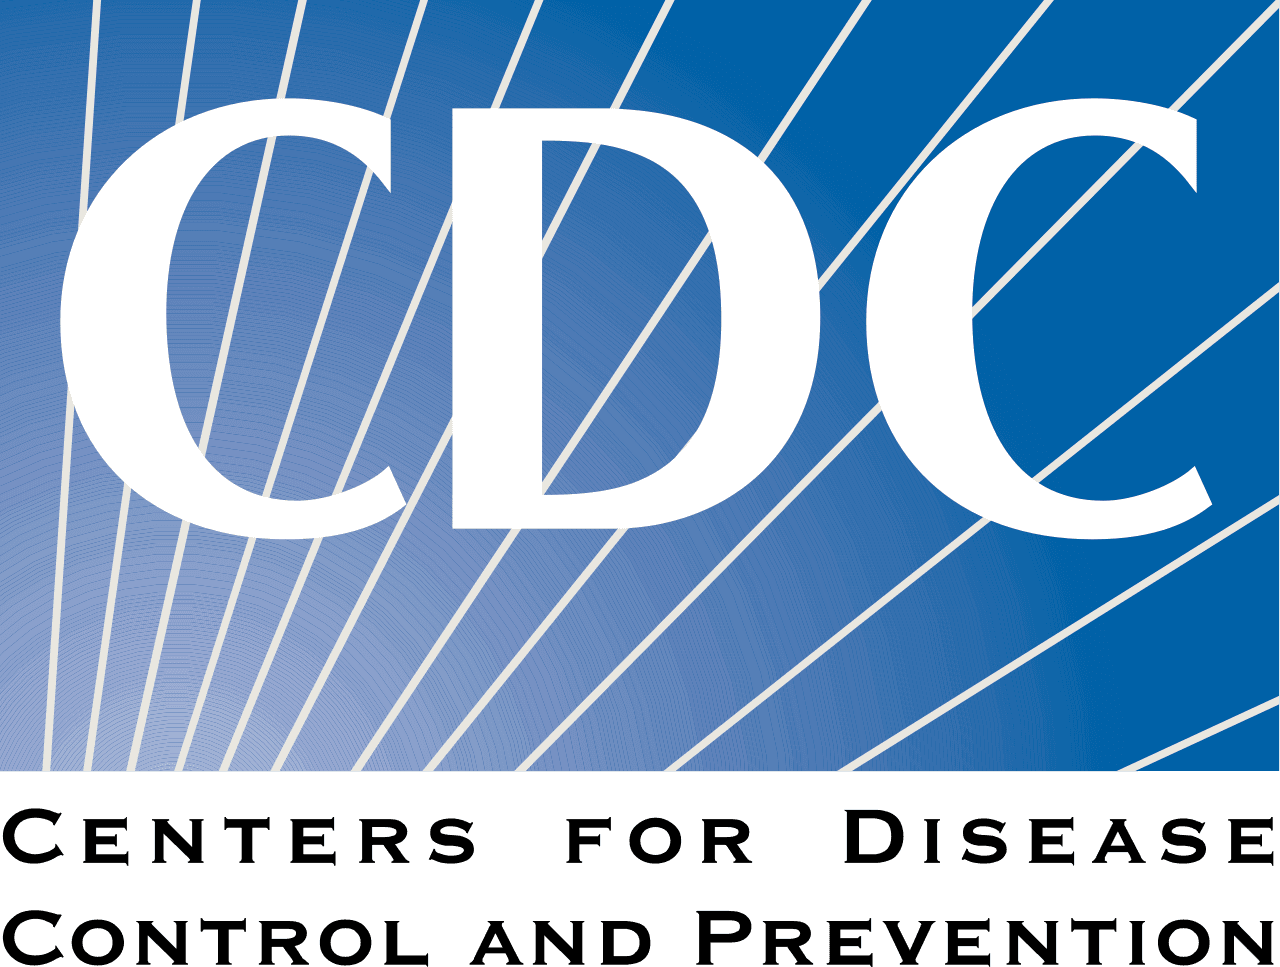 Centers for Disease Control Opens in new window